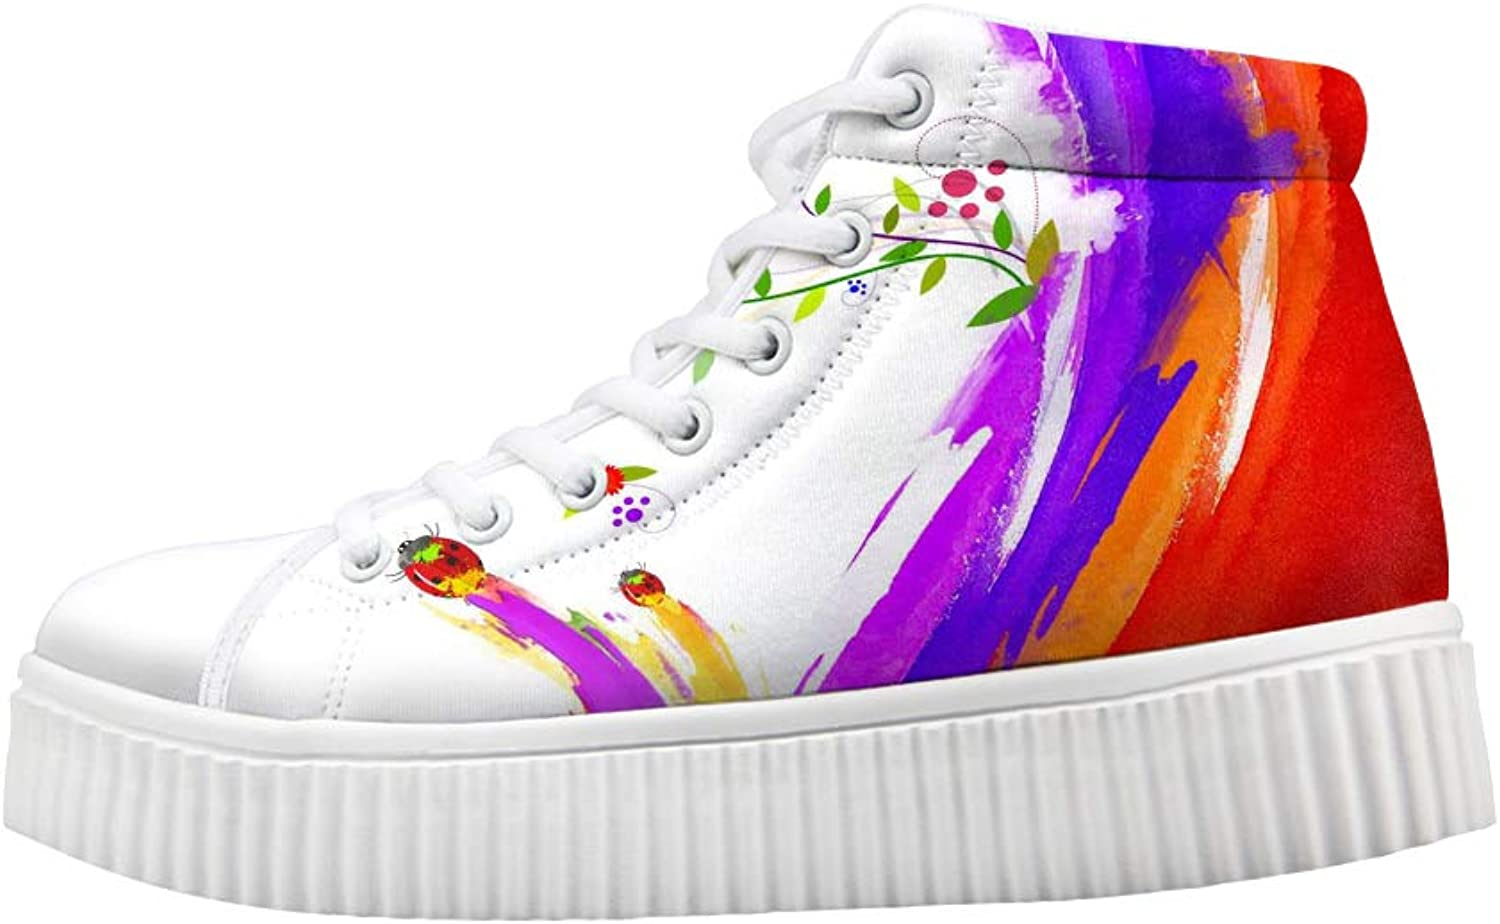 Owaheson Platform Lace up Sneaker Casual Chunky Walking shoes High Top Women Ladybugs Flowers Holi colors Carnival